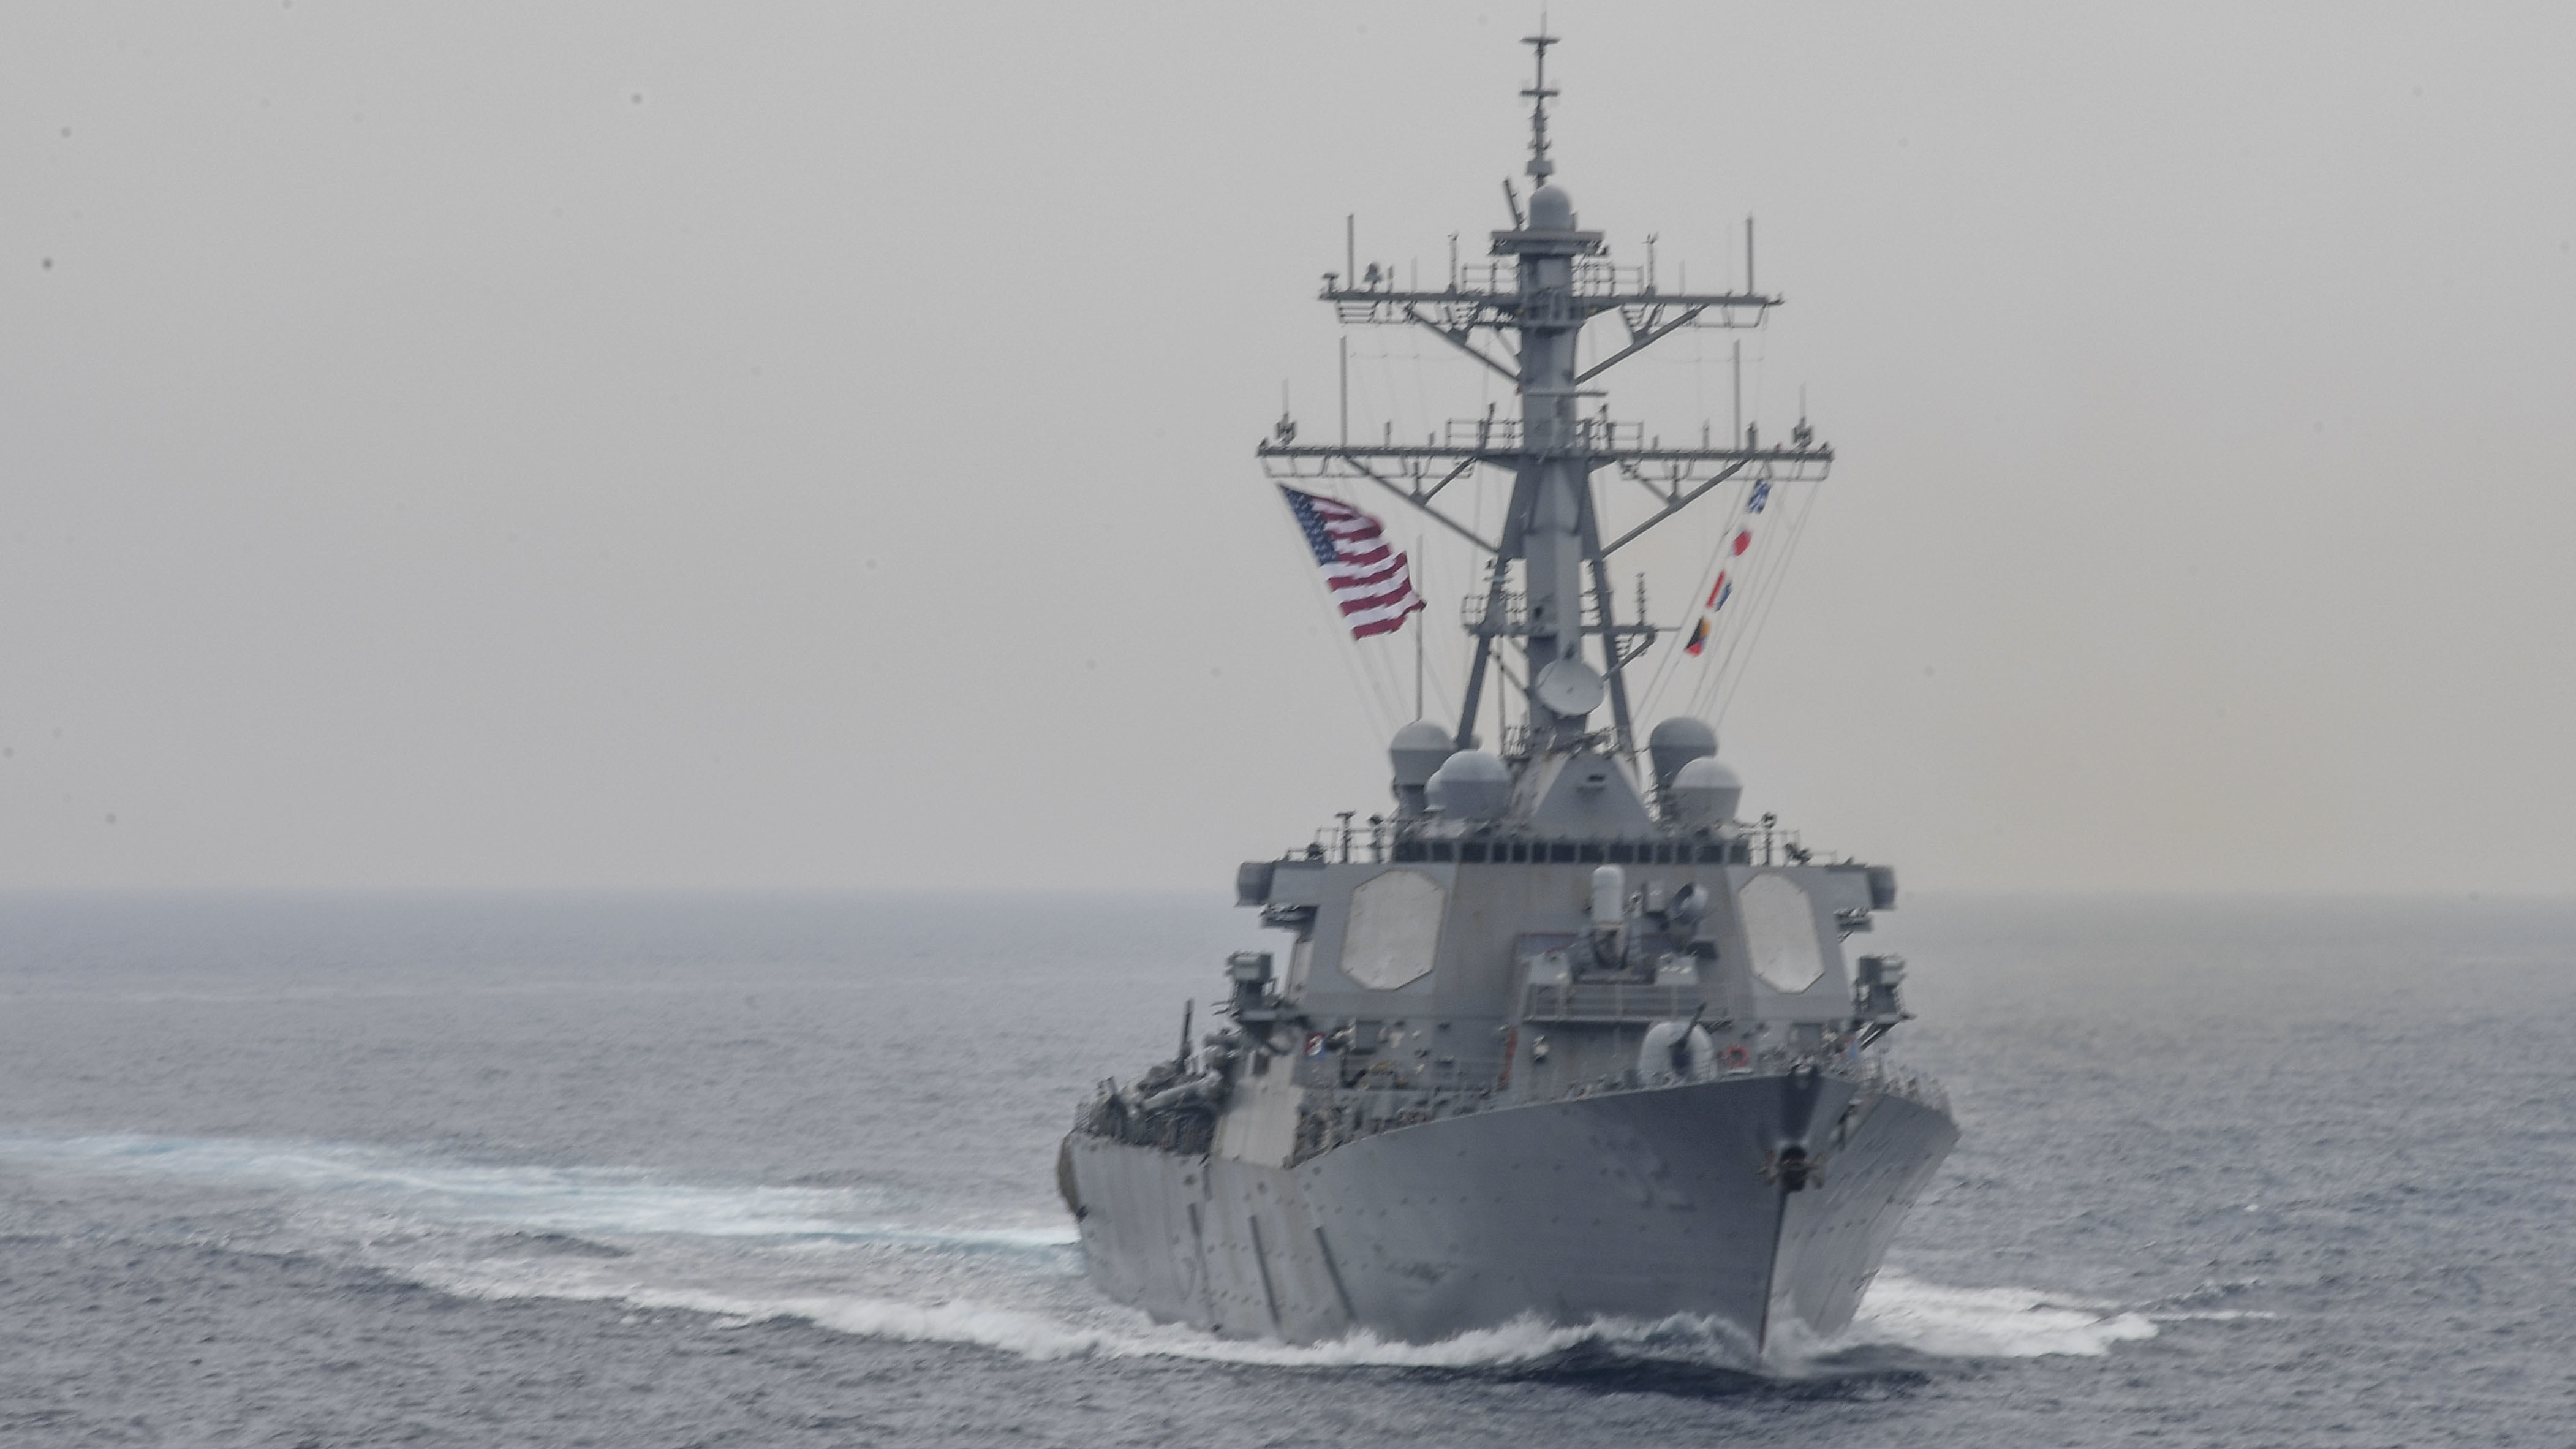 Coast Guard confirms 7 missing from US Navy ship